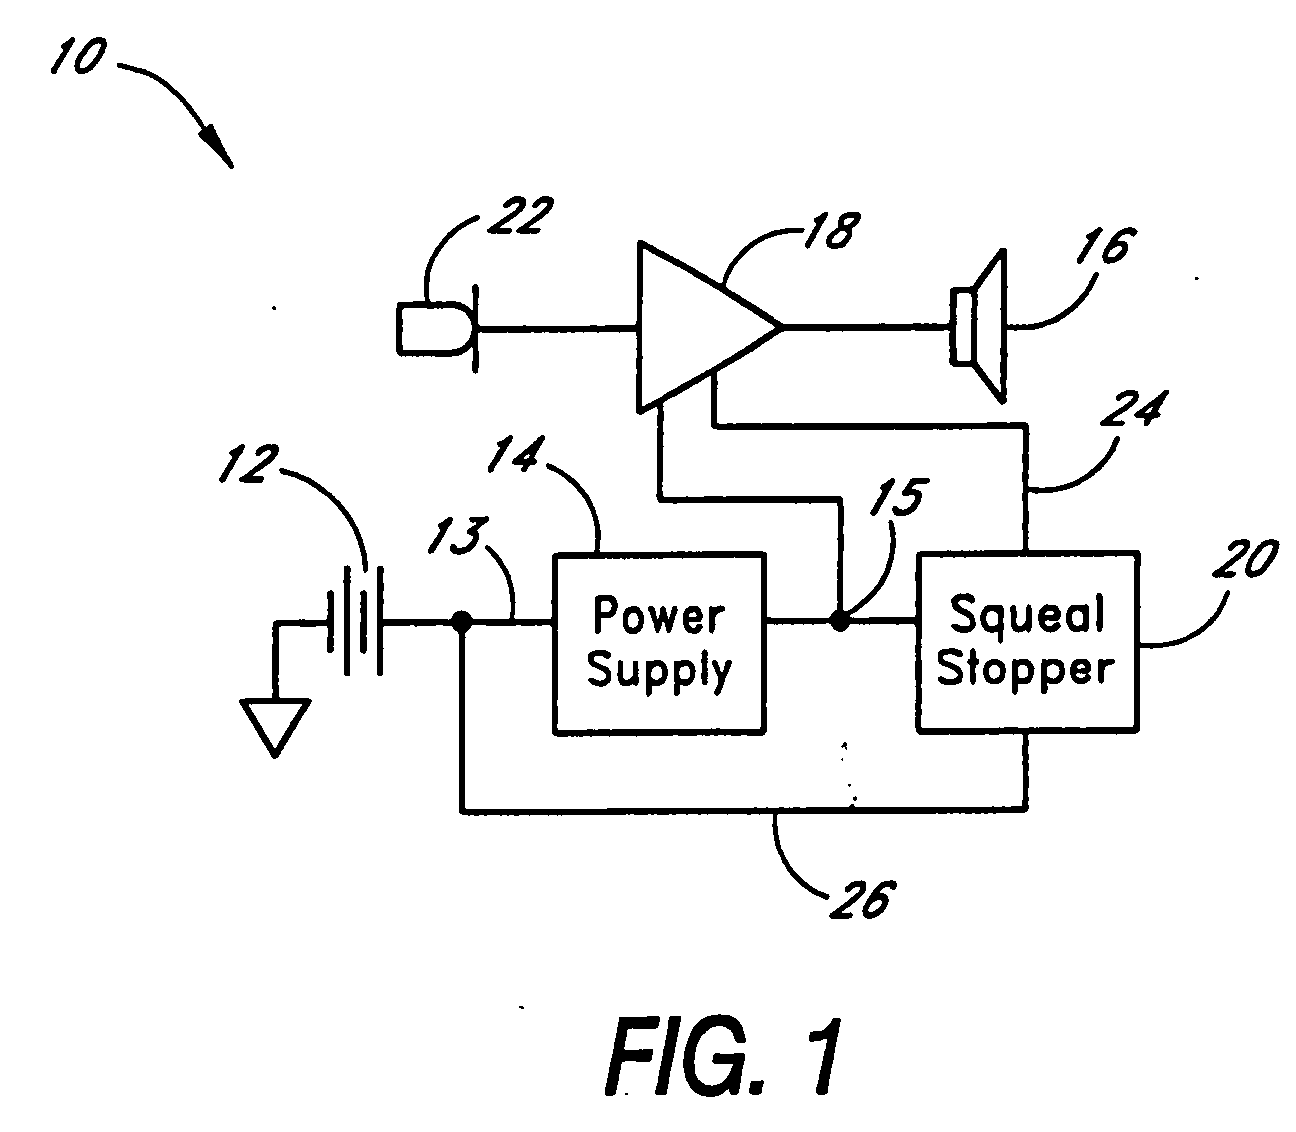 EP1282340A3 - System and method for reducing hearing aid